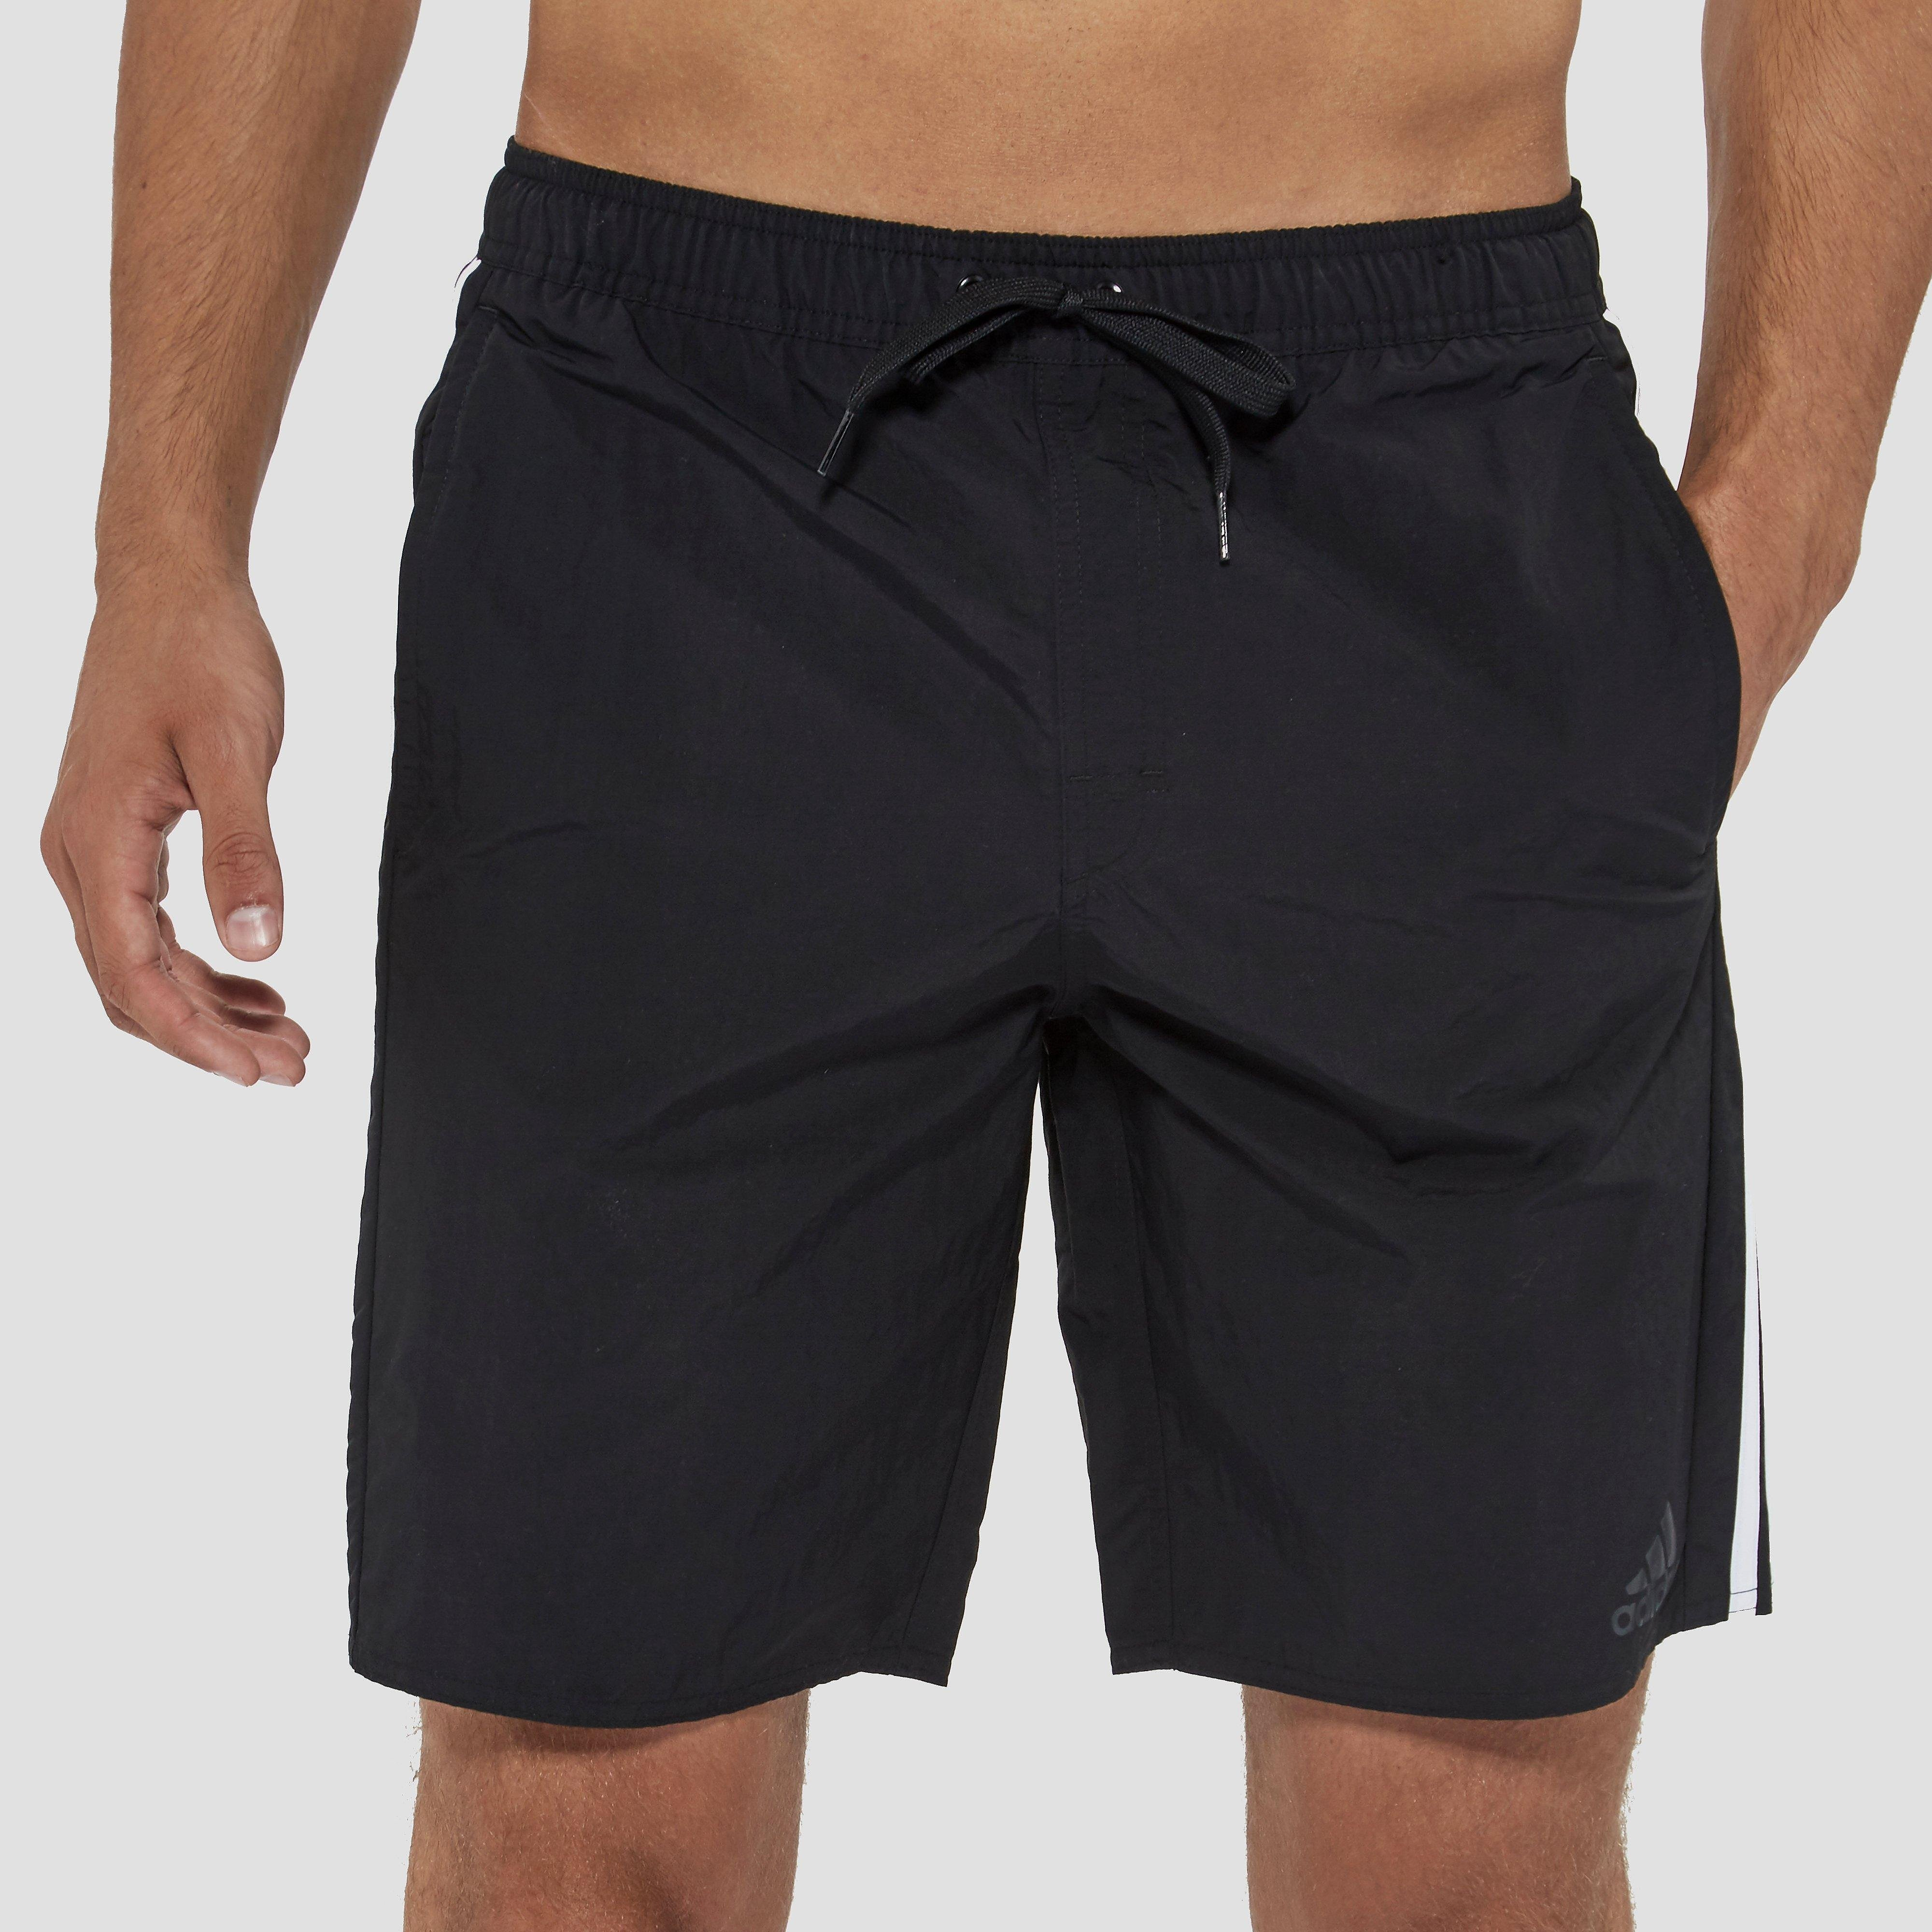 adidas 3-Stripes Watershort, Zwart, L, Male, Zwemmen